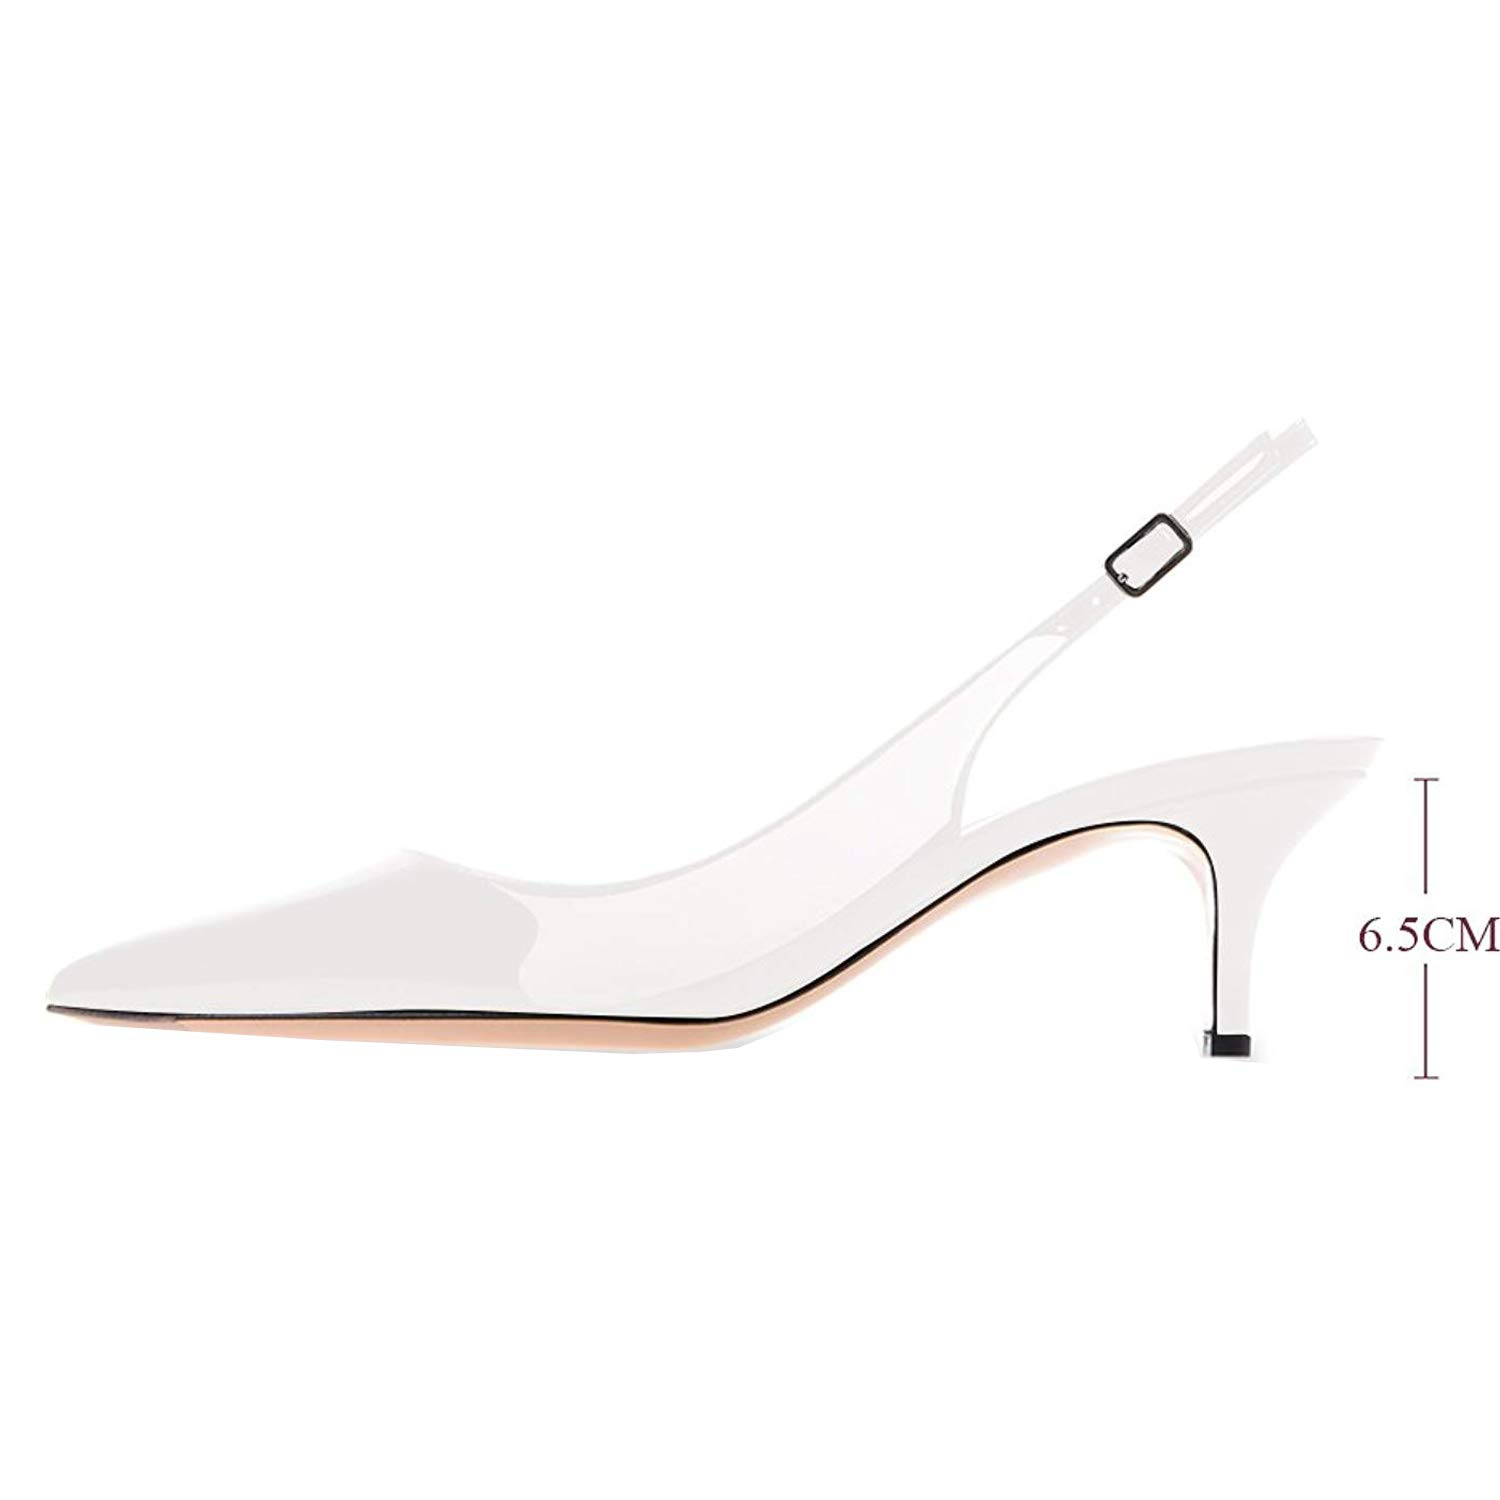 163ff63e306 Lovirs Womens White Slingback Ankle Strap Sandals Stiletto Mid-Heel Pointy  Toe Pumps Shoes for Party Dress 12 M US